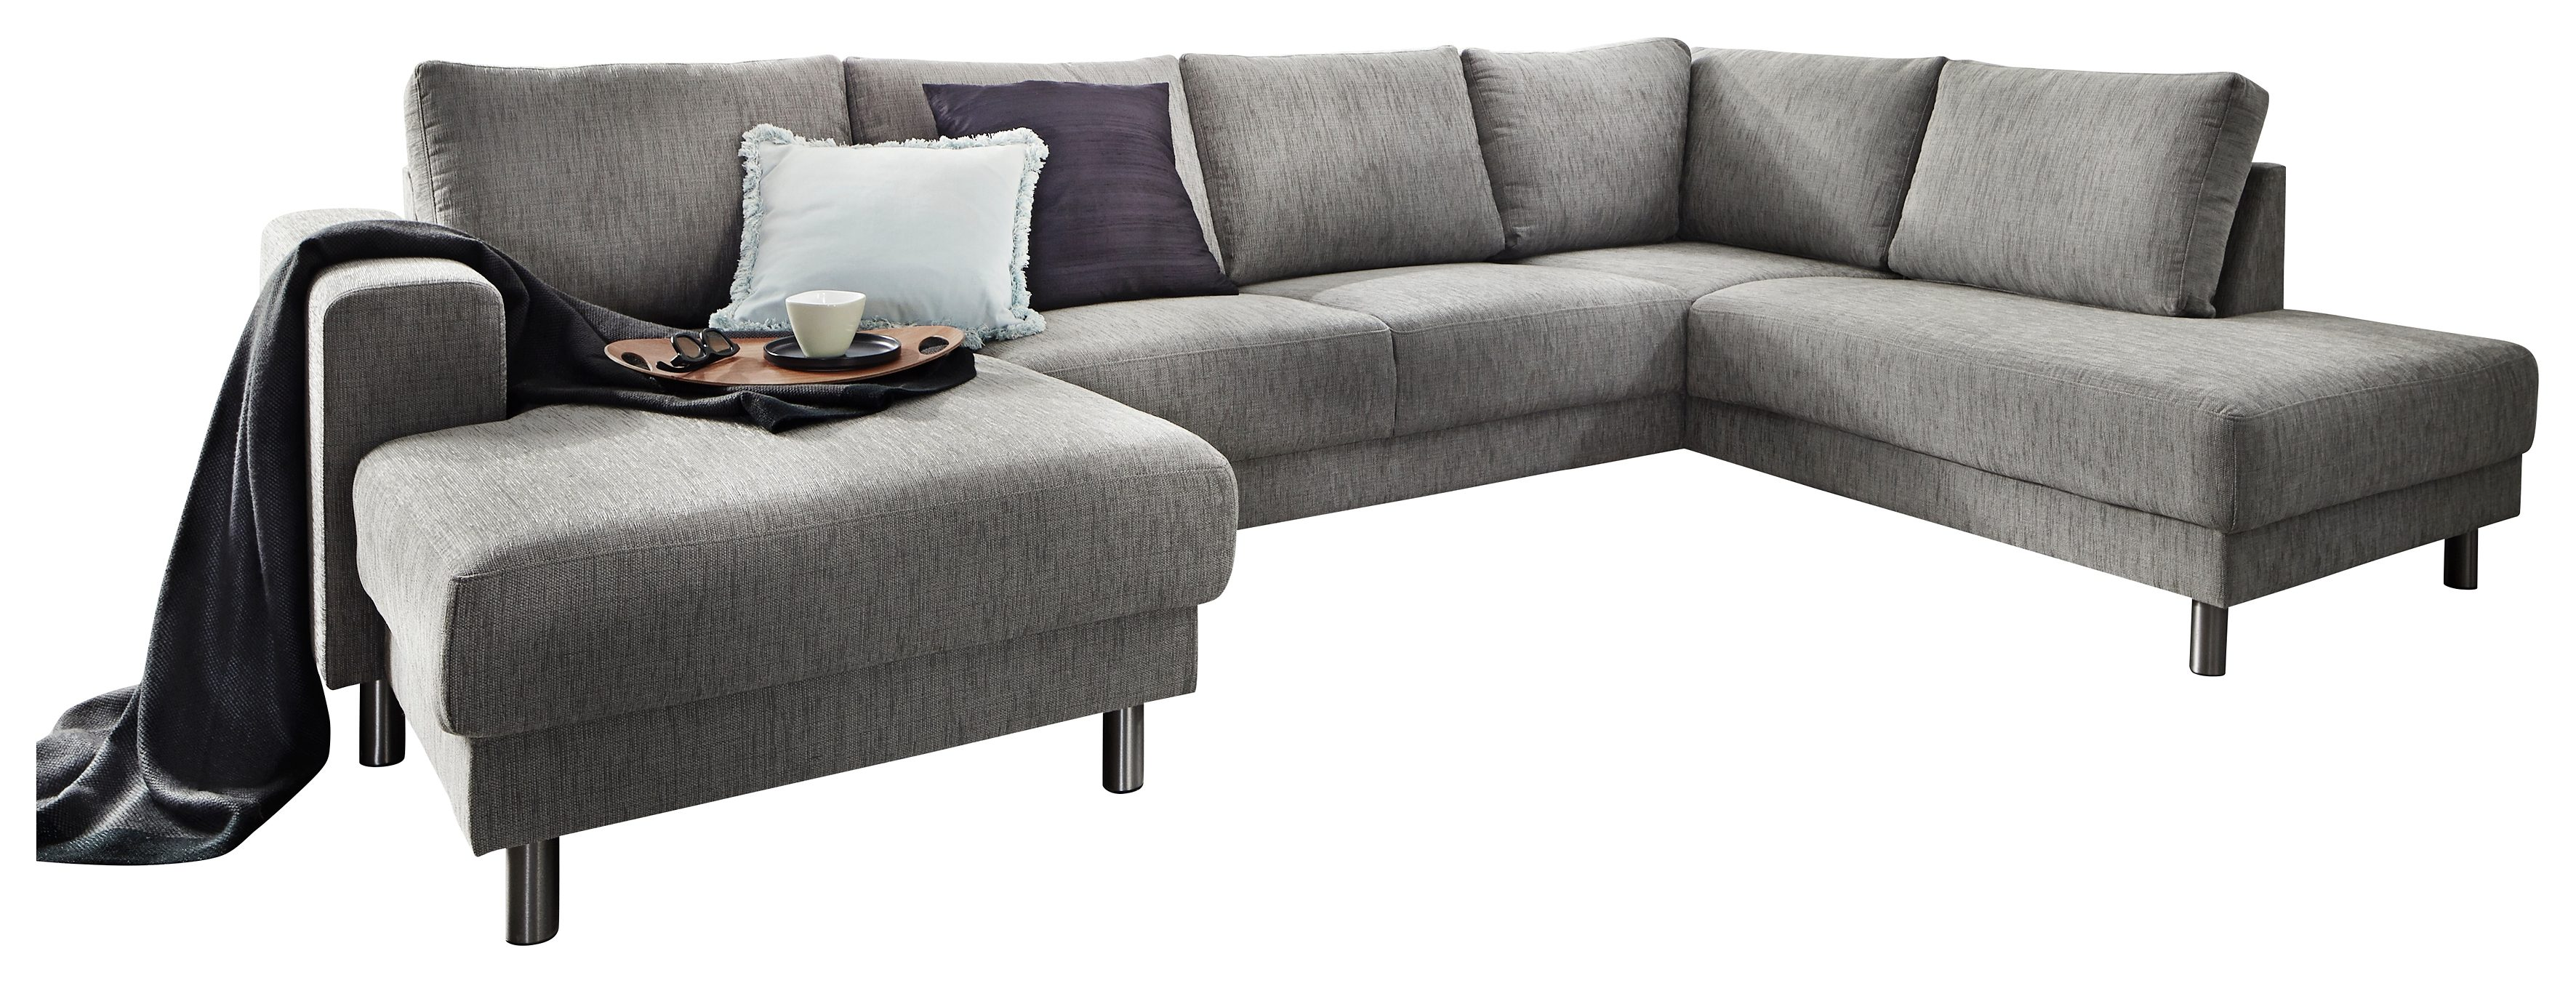 Atlantic Home Collection Couchtisch Atlantic Home Collection Couchtisch